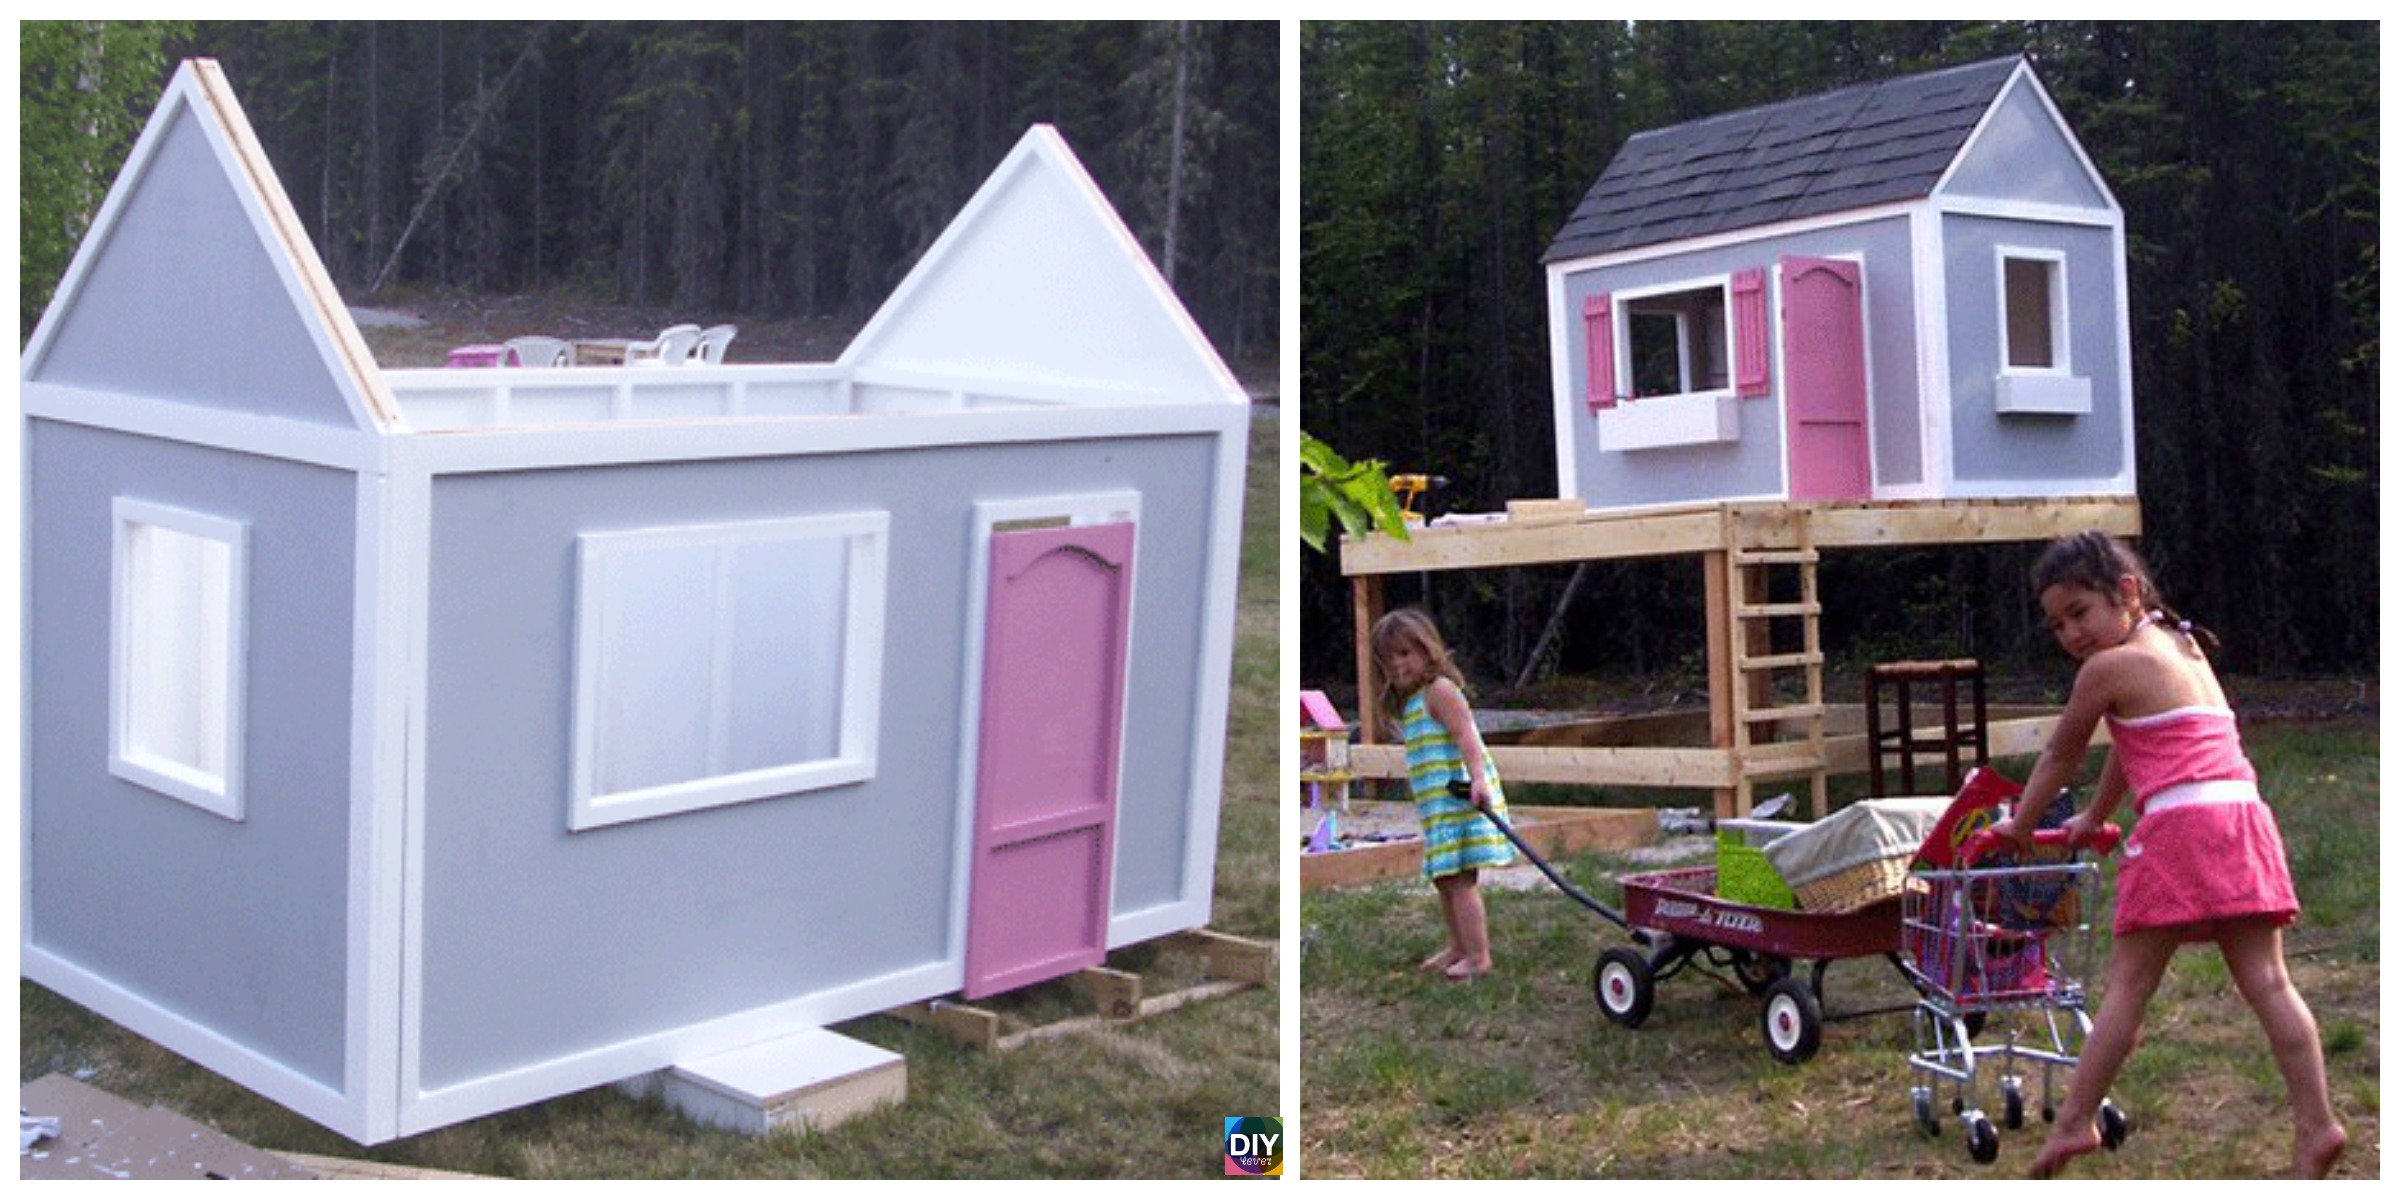 How to DIY Playhouse for Kids – Free Plan